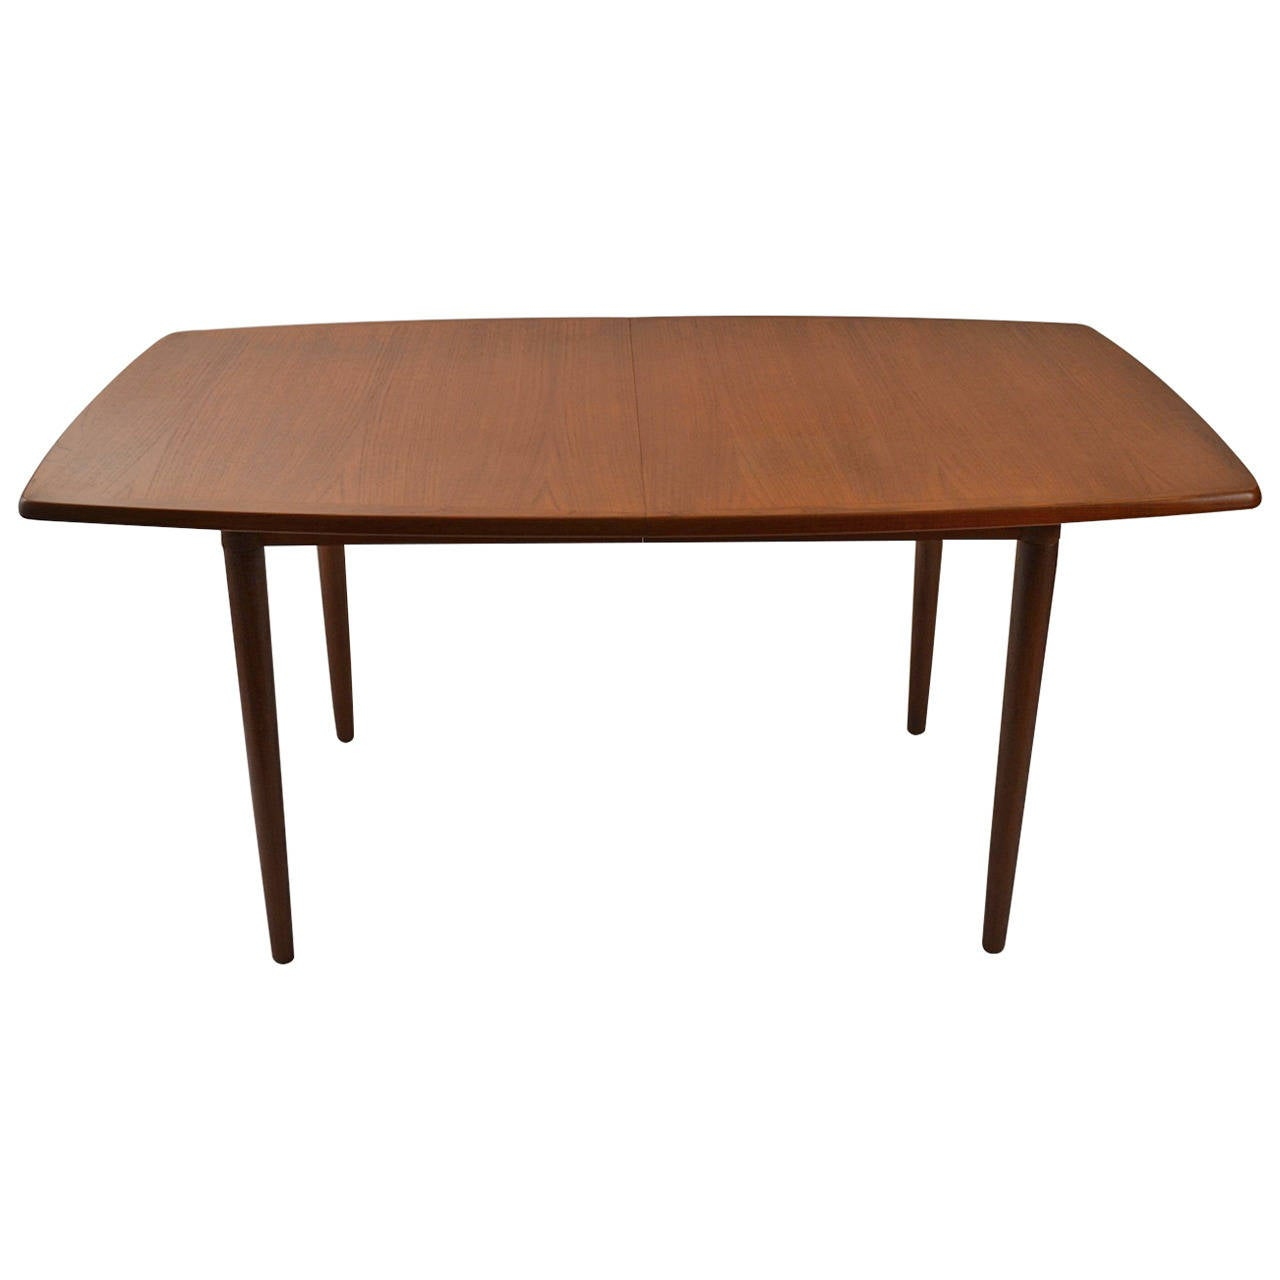 Danish modern teak dining table with two leaves at 1stdibs for Danish modern dining room table